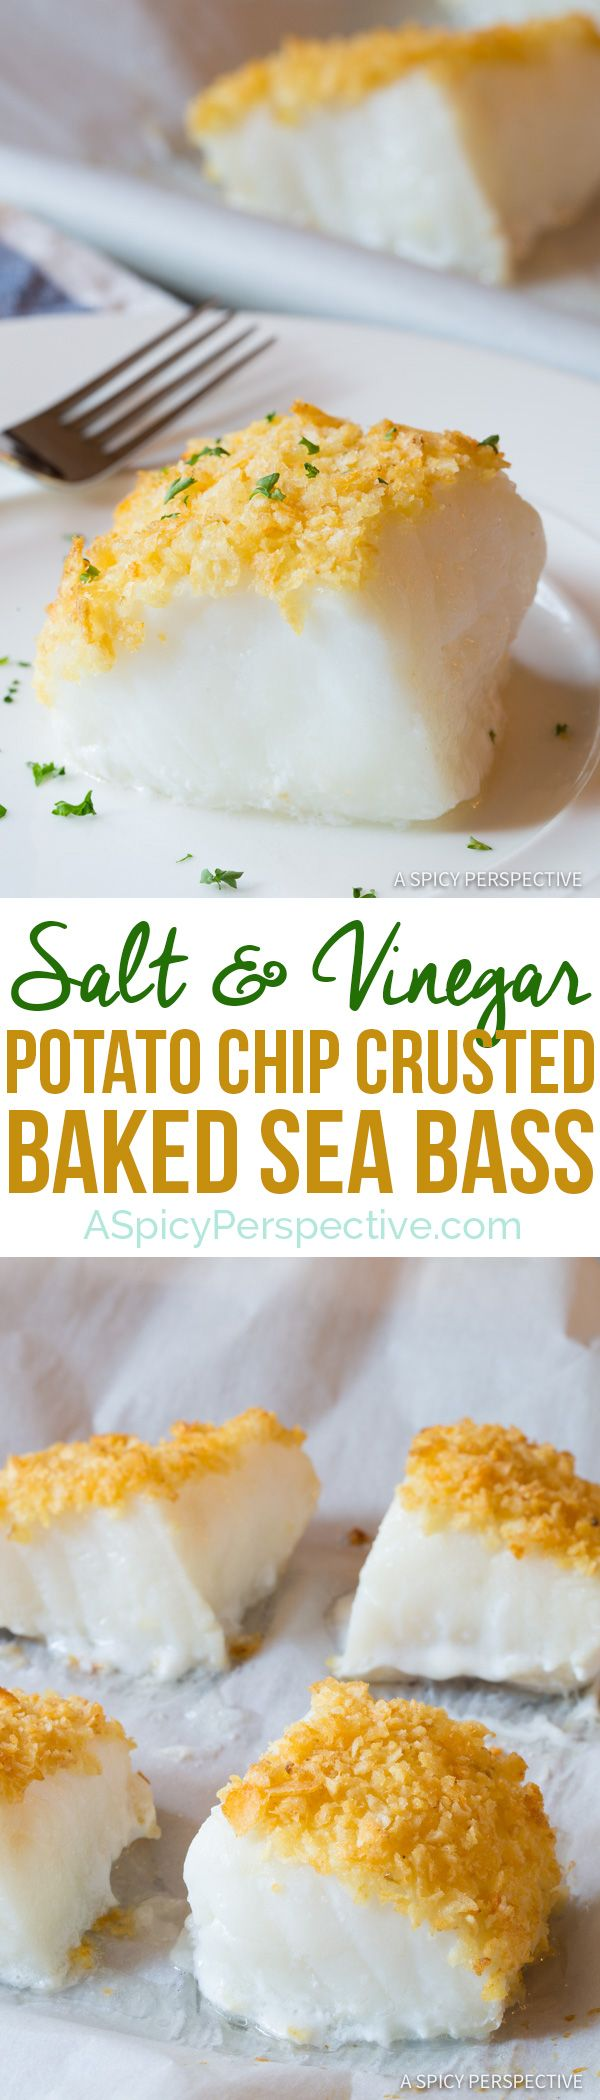 3-Ingredient Salt and Vinegar Potato Chip Crusted Baked Sea Bass Recipe (Healthy Fish and Chips) | ASpicyPerspective.com